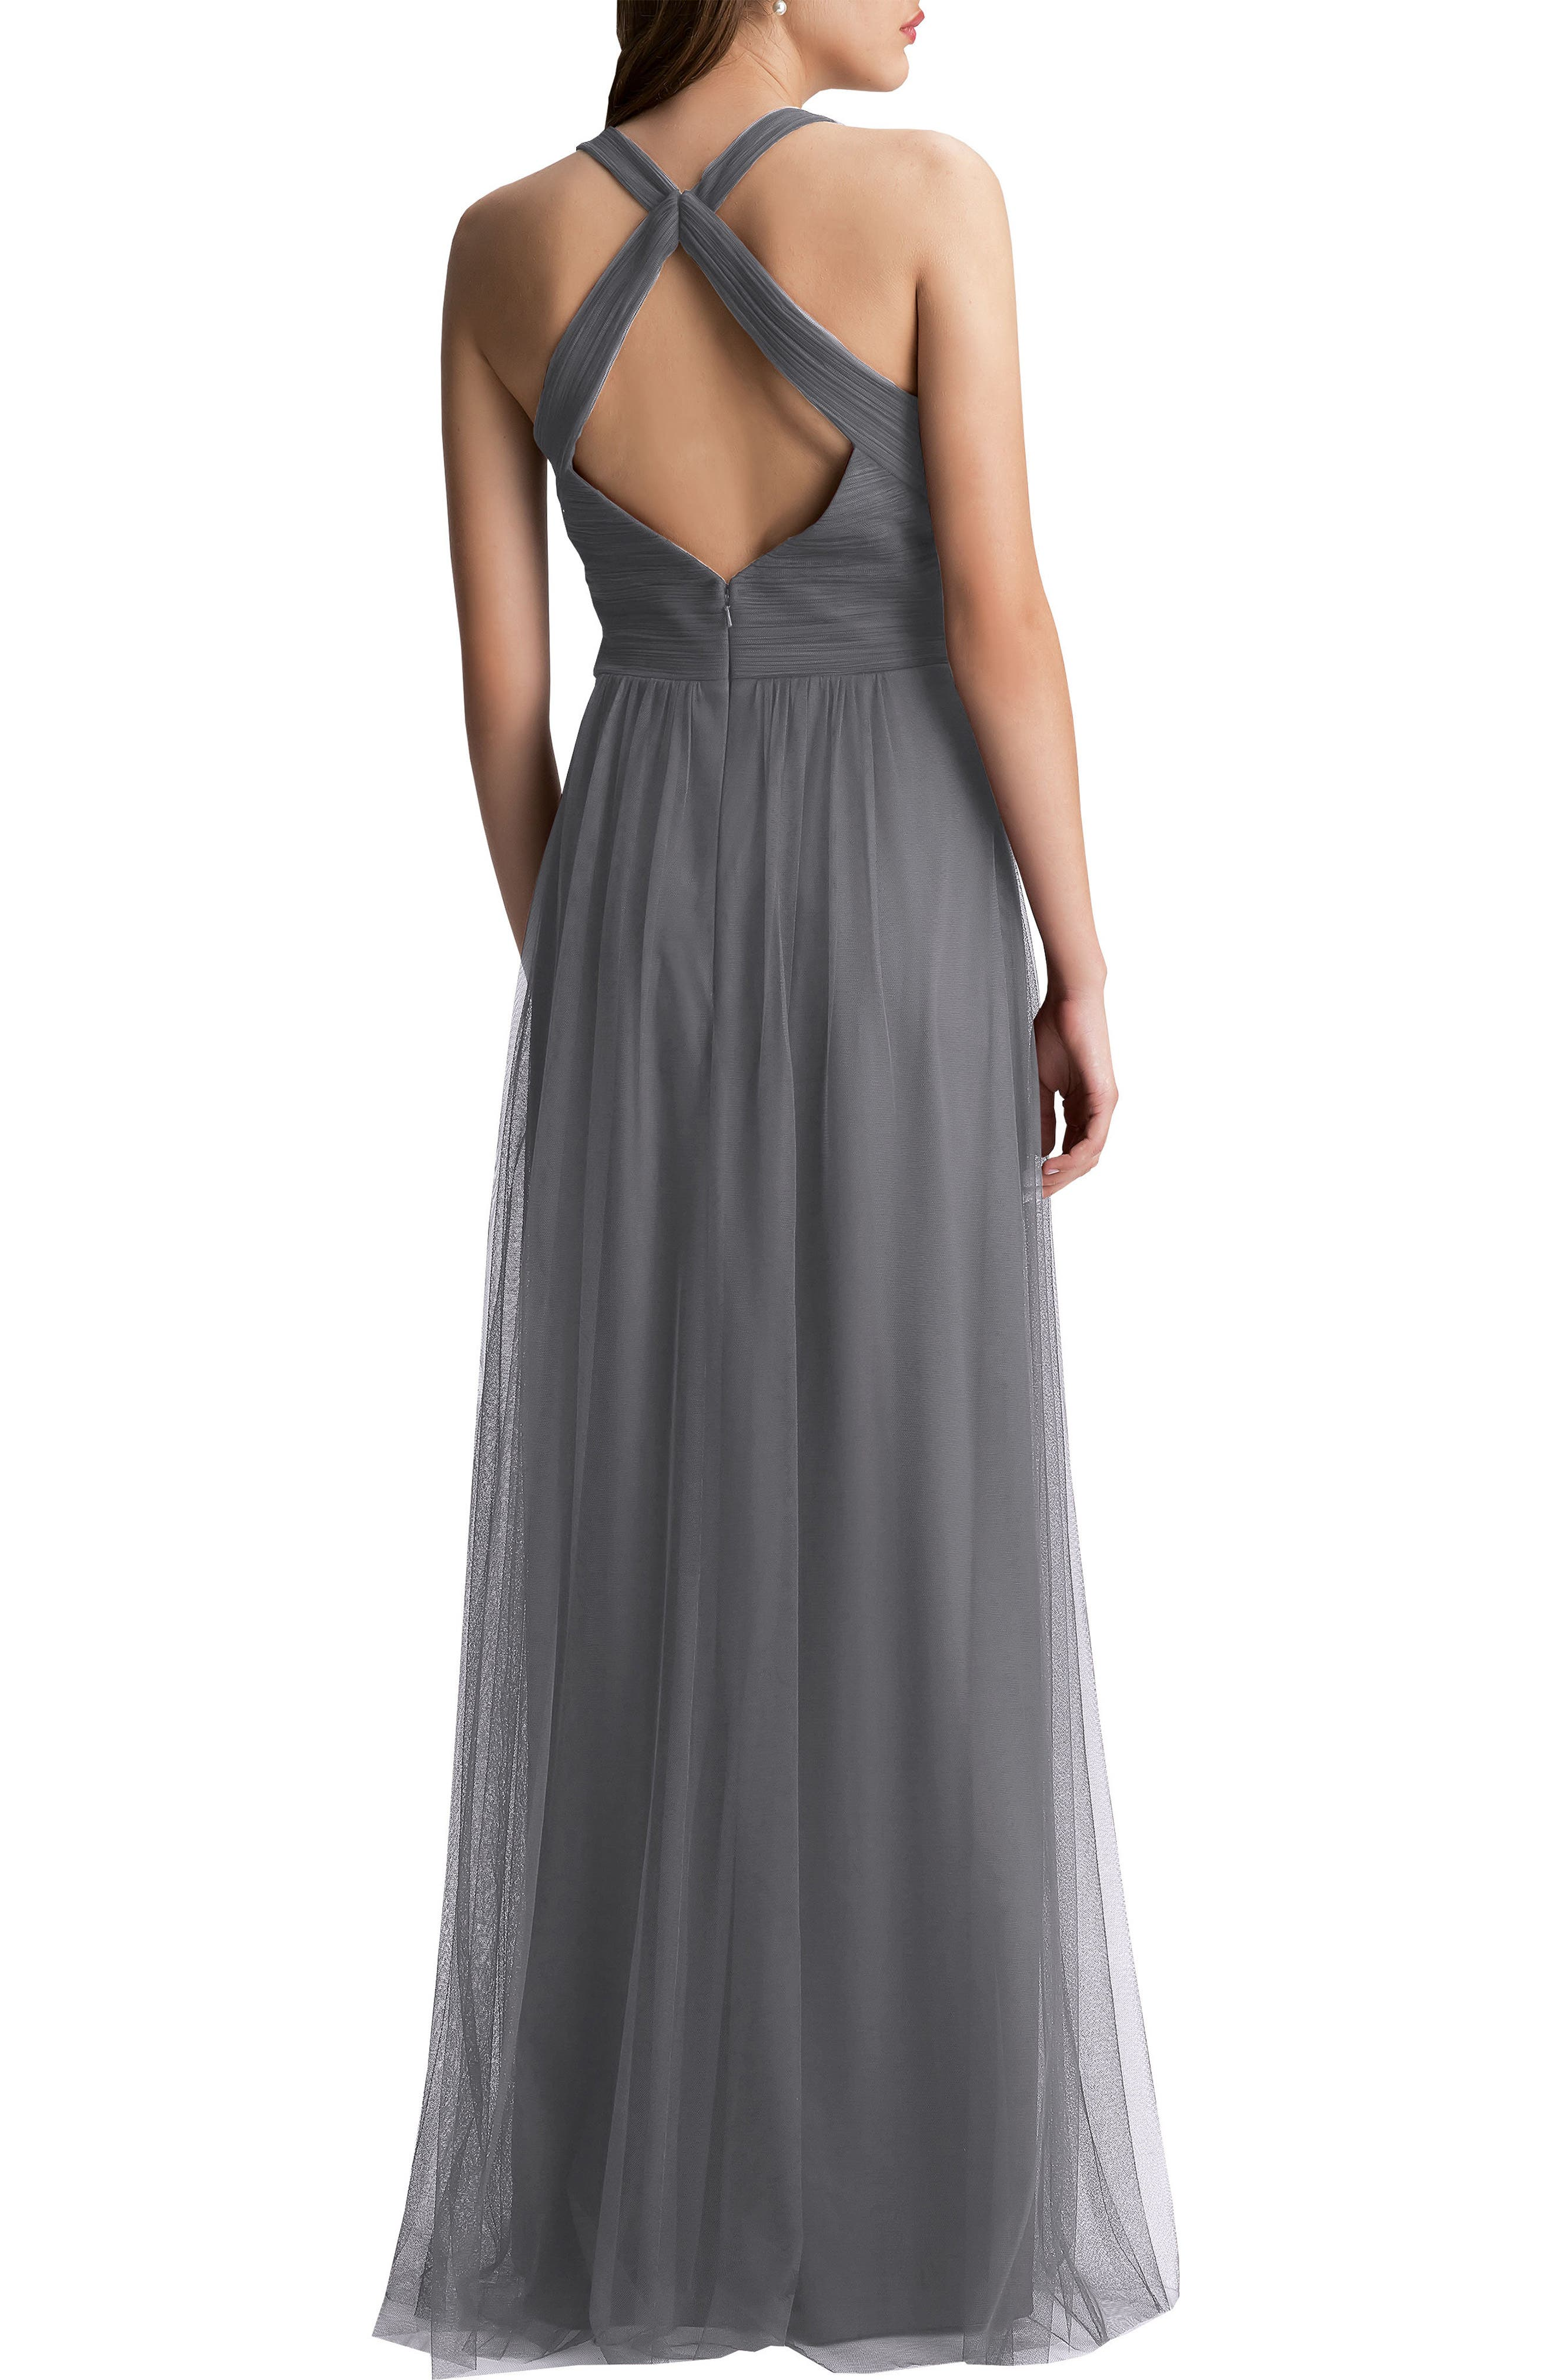 #LEVKOFF, Crisscross Strap English Net A-Line Gown, Alternate thumbnail 2, color, PEWTER